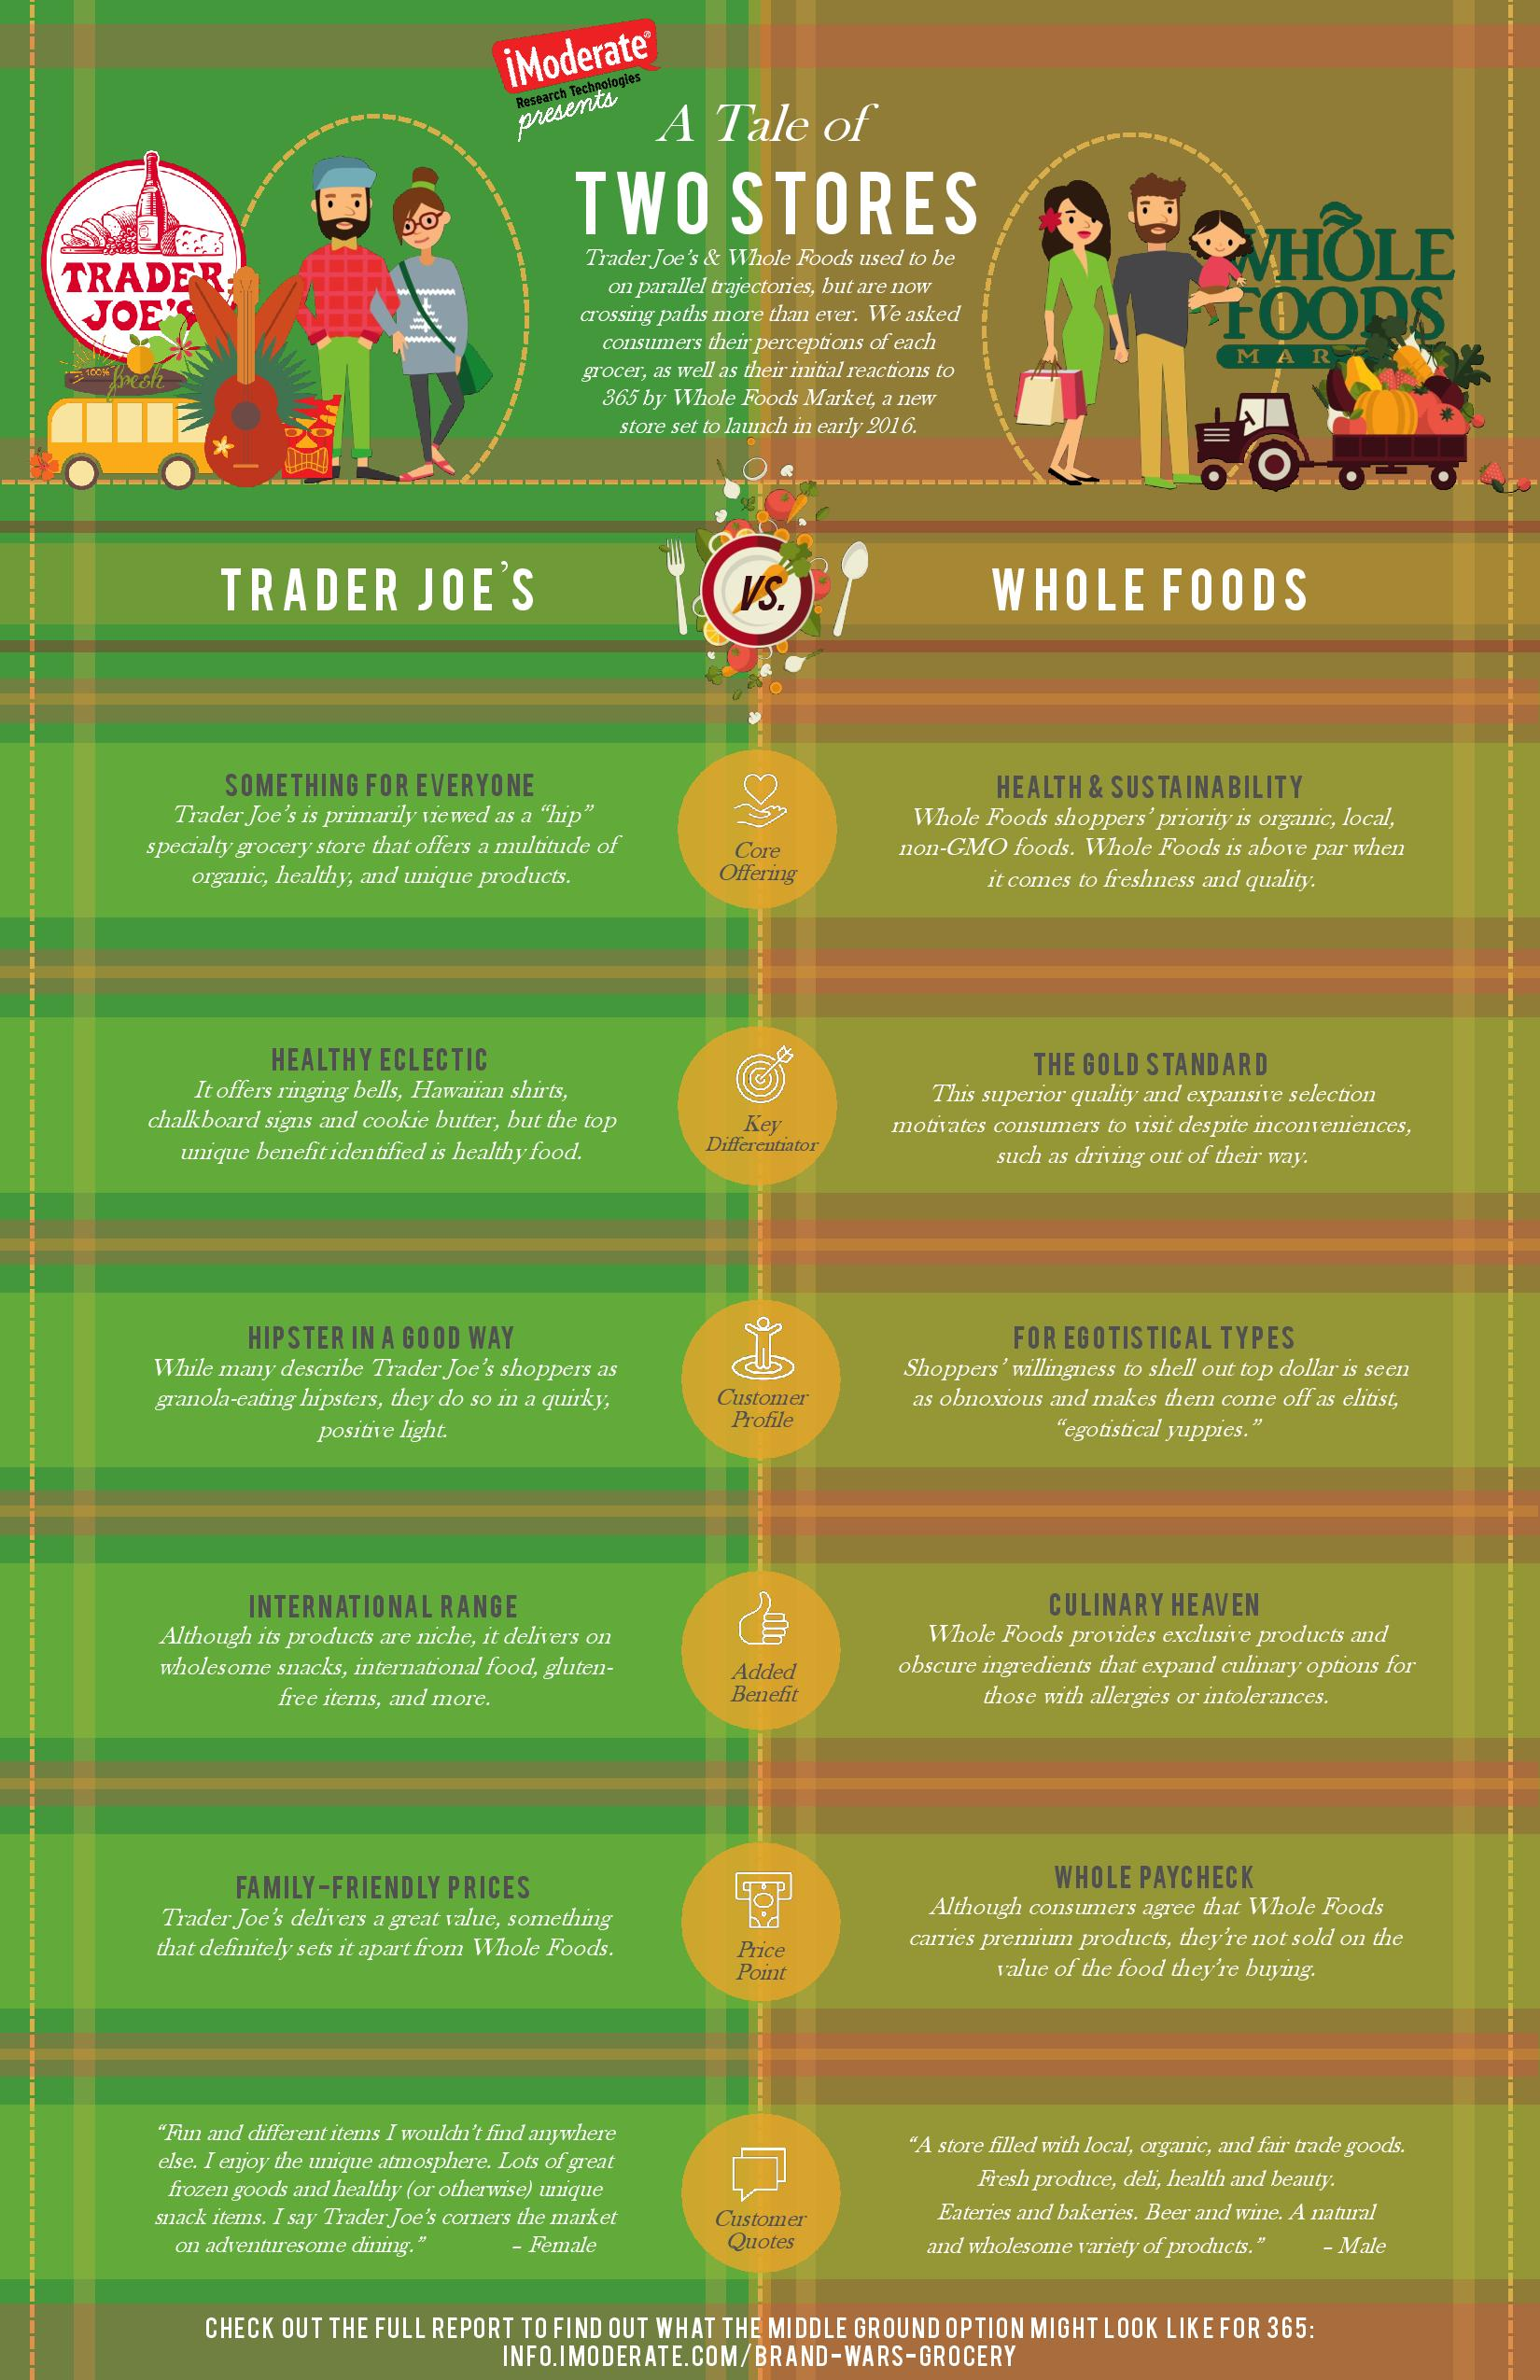 a short analysis of trader joes a grocery store company According to deutsche bank analyst karen short, trader joe's sells the same products as whole foods but the so-called whole paycheck grocery company is also working on opening a cheaper supermarket chain targeting millennials and grocery store money saving tips trader joe's.